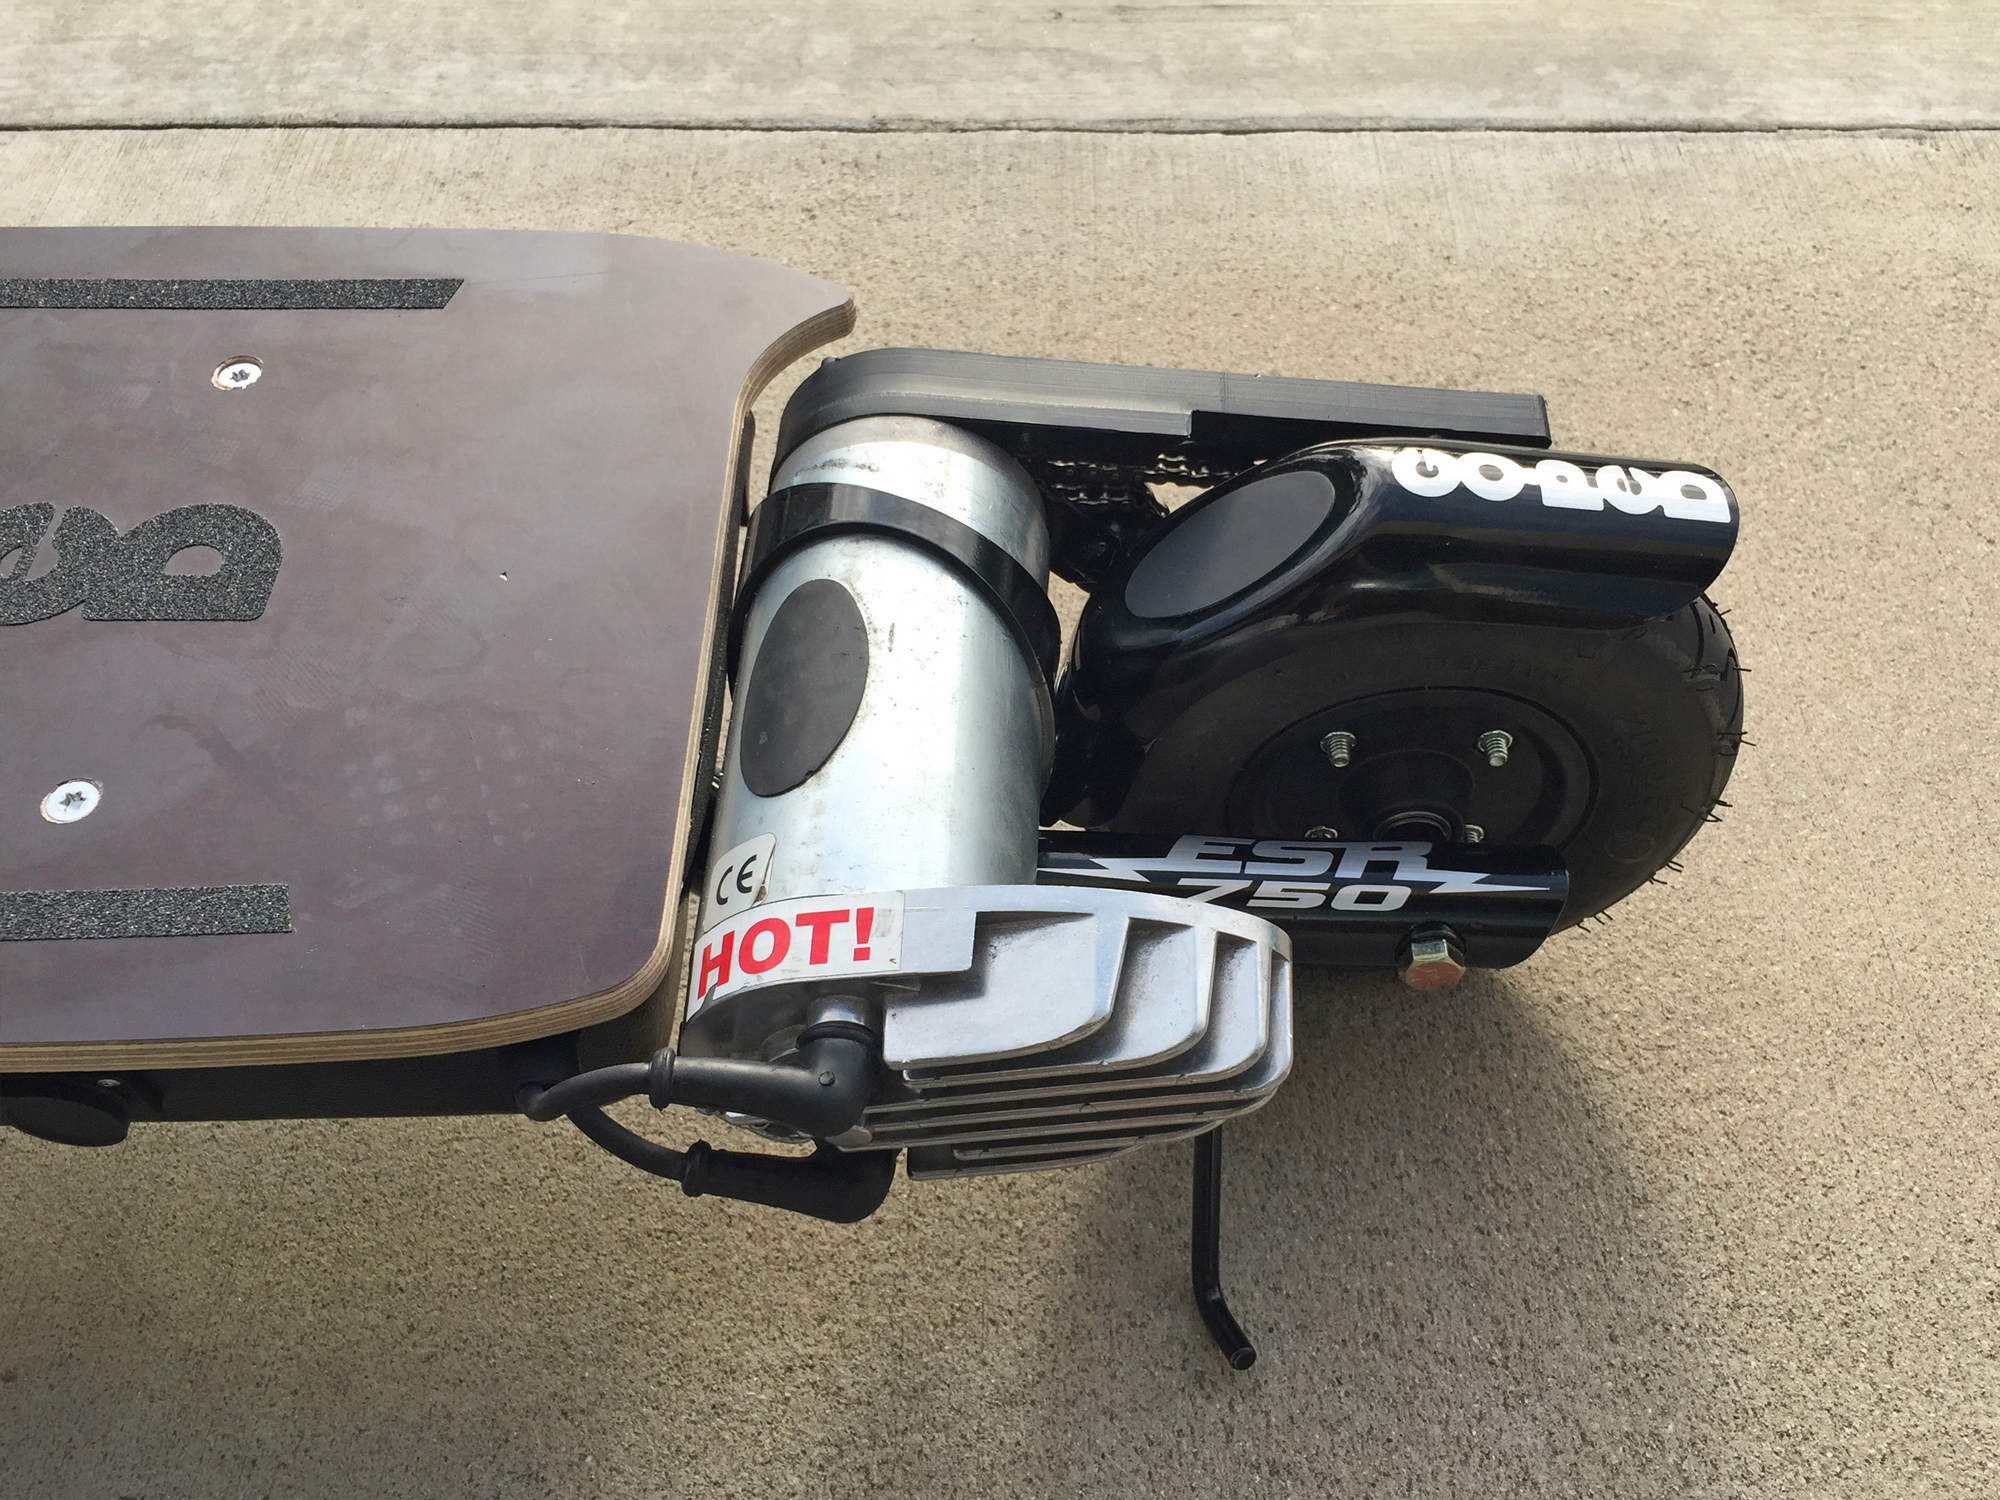 goped i ped 2 review electric ride reviews, prices, specs, videos Viper Goped at Go Ped Iped 8 Wiring Diagram